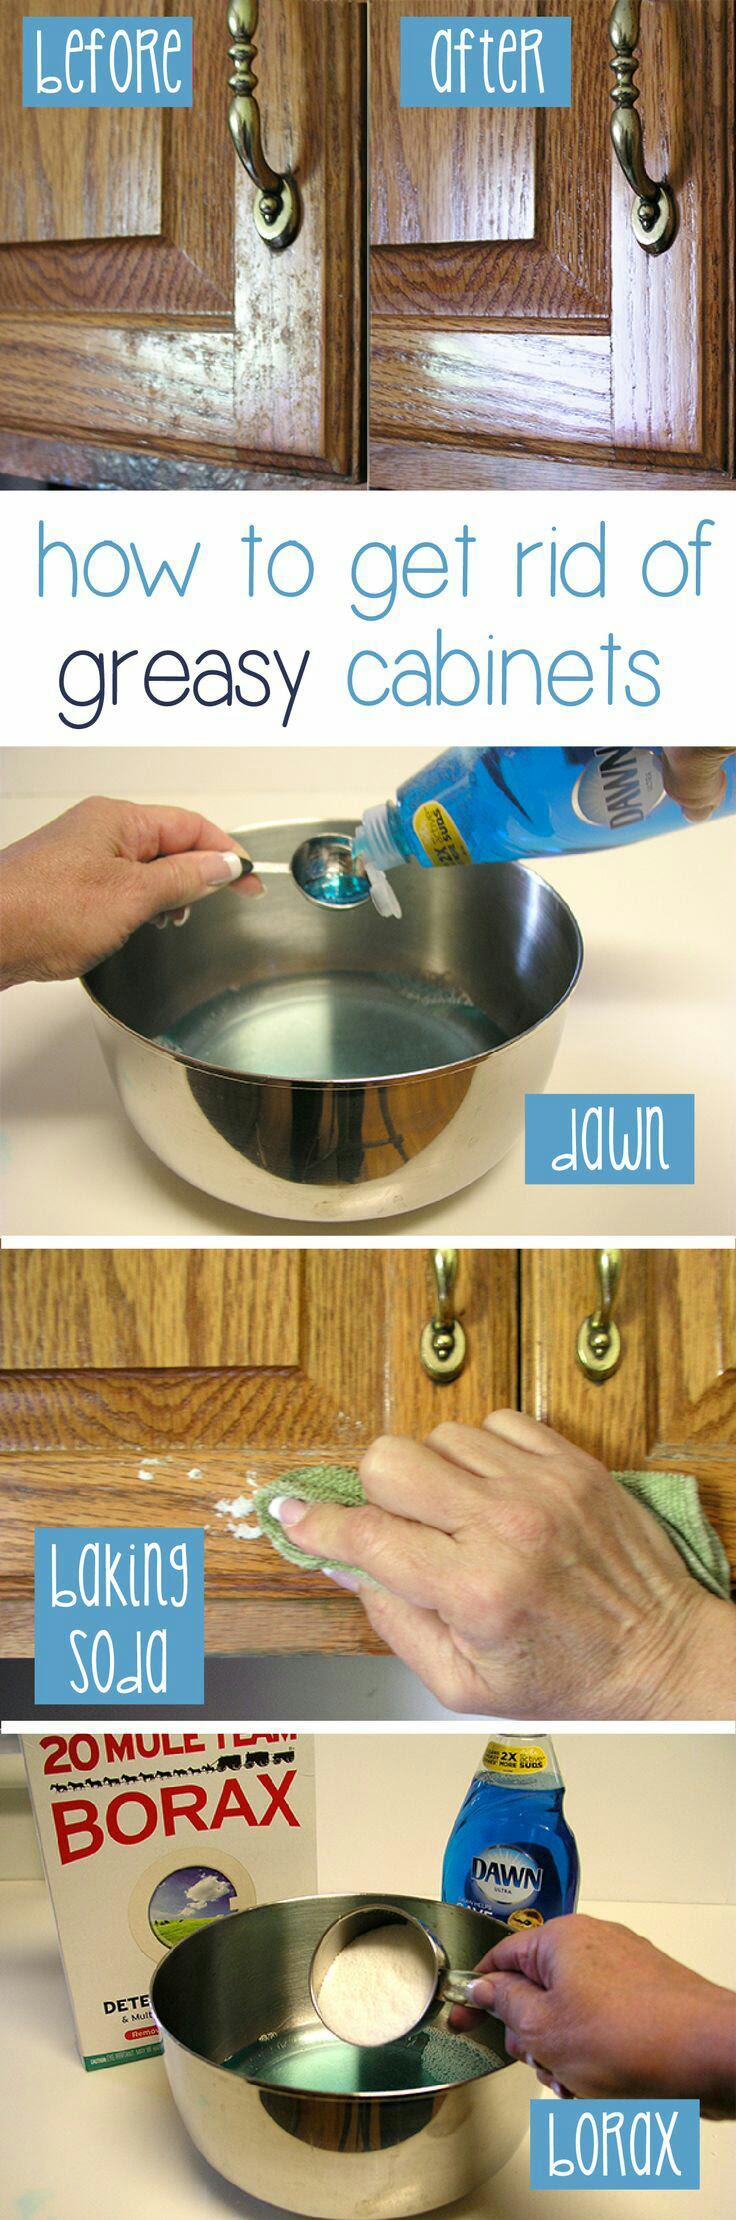 How to Clean Grease From Kitchen Cabinet Doors | Cleaning ...